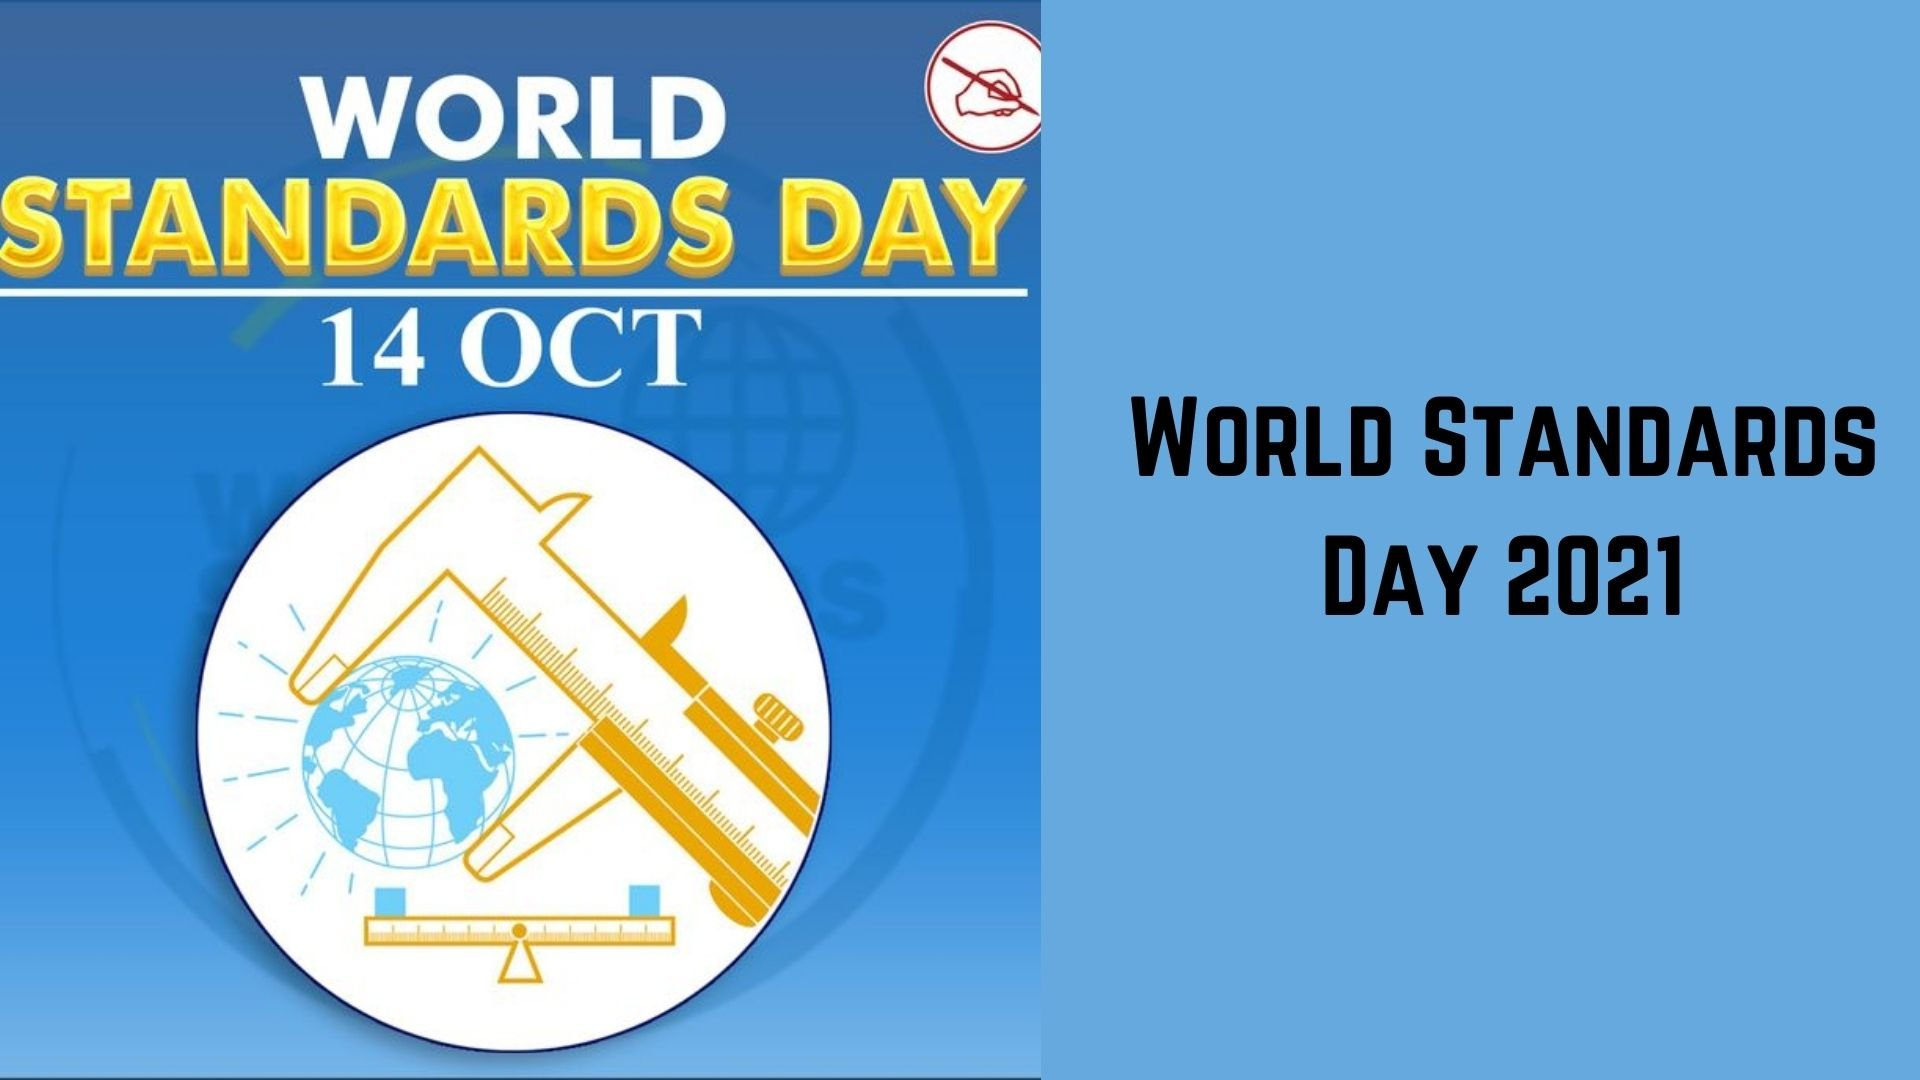 World Standards Day 2021, Check When is World Standards Day, Theme, Poster,  and More